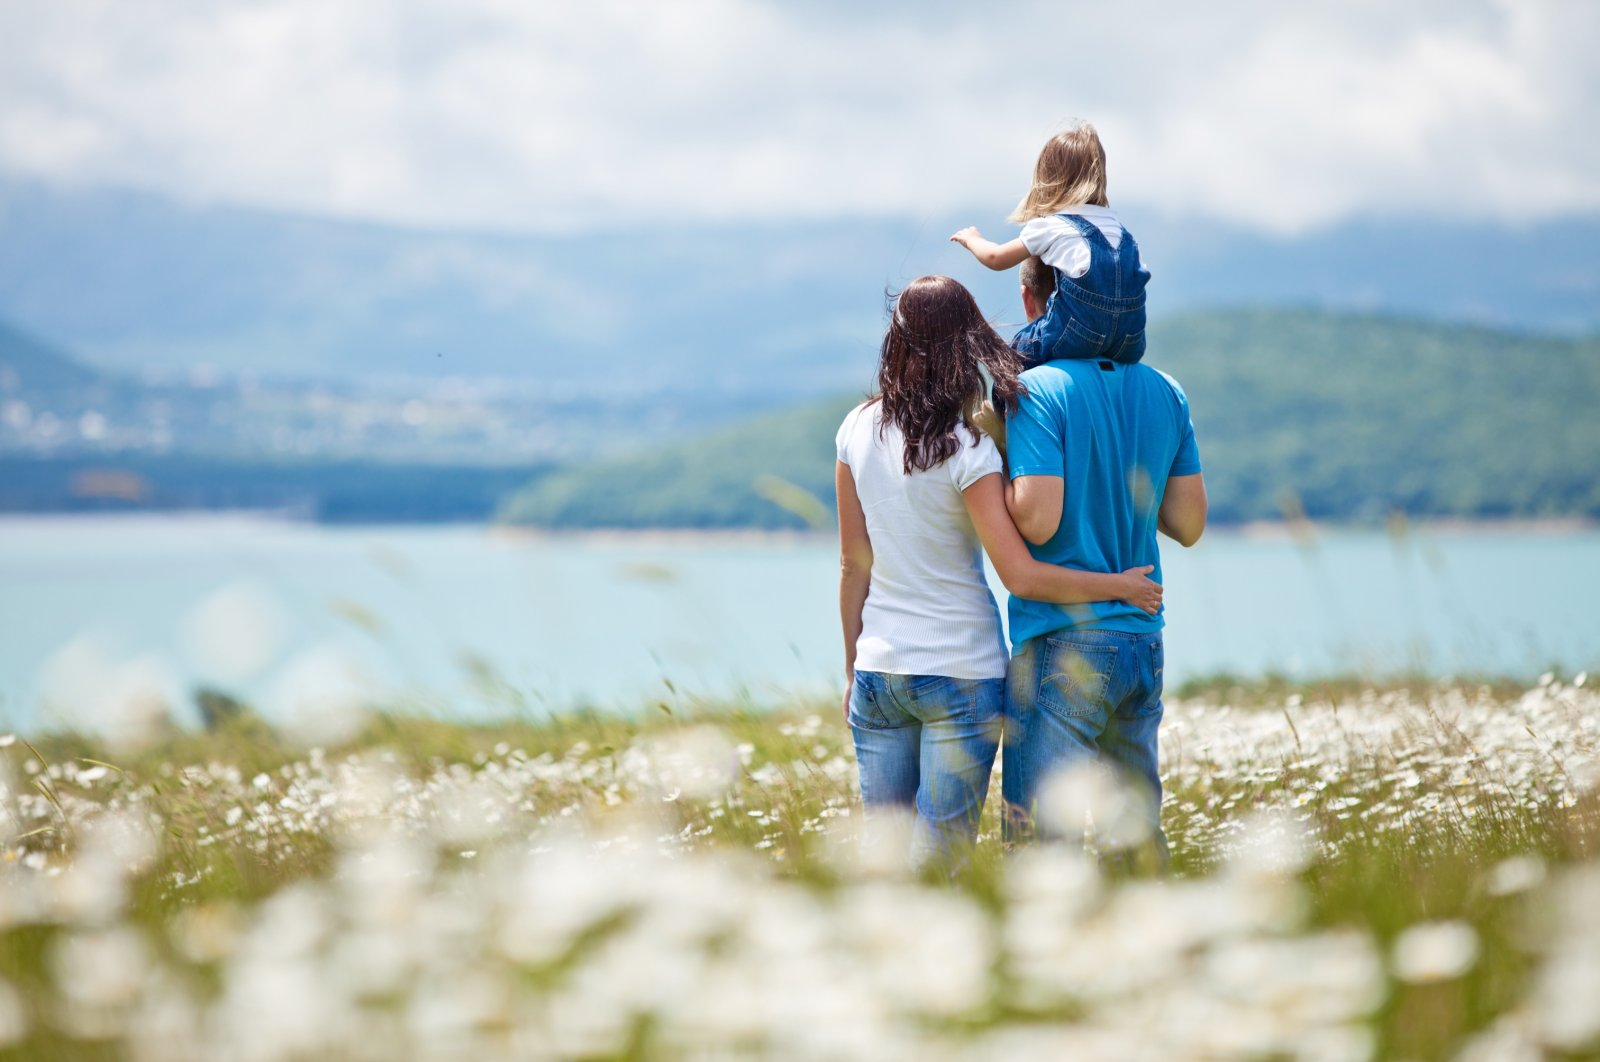 A family standing in front of a lake watches nature (Shutterstock Photo)